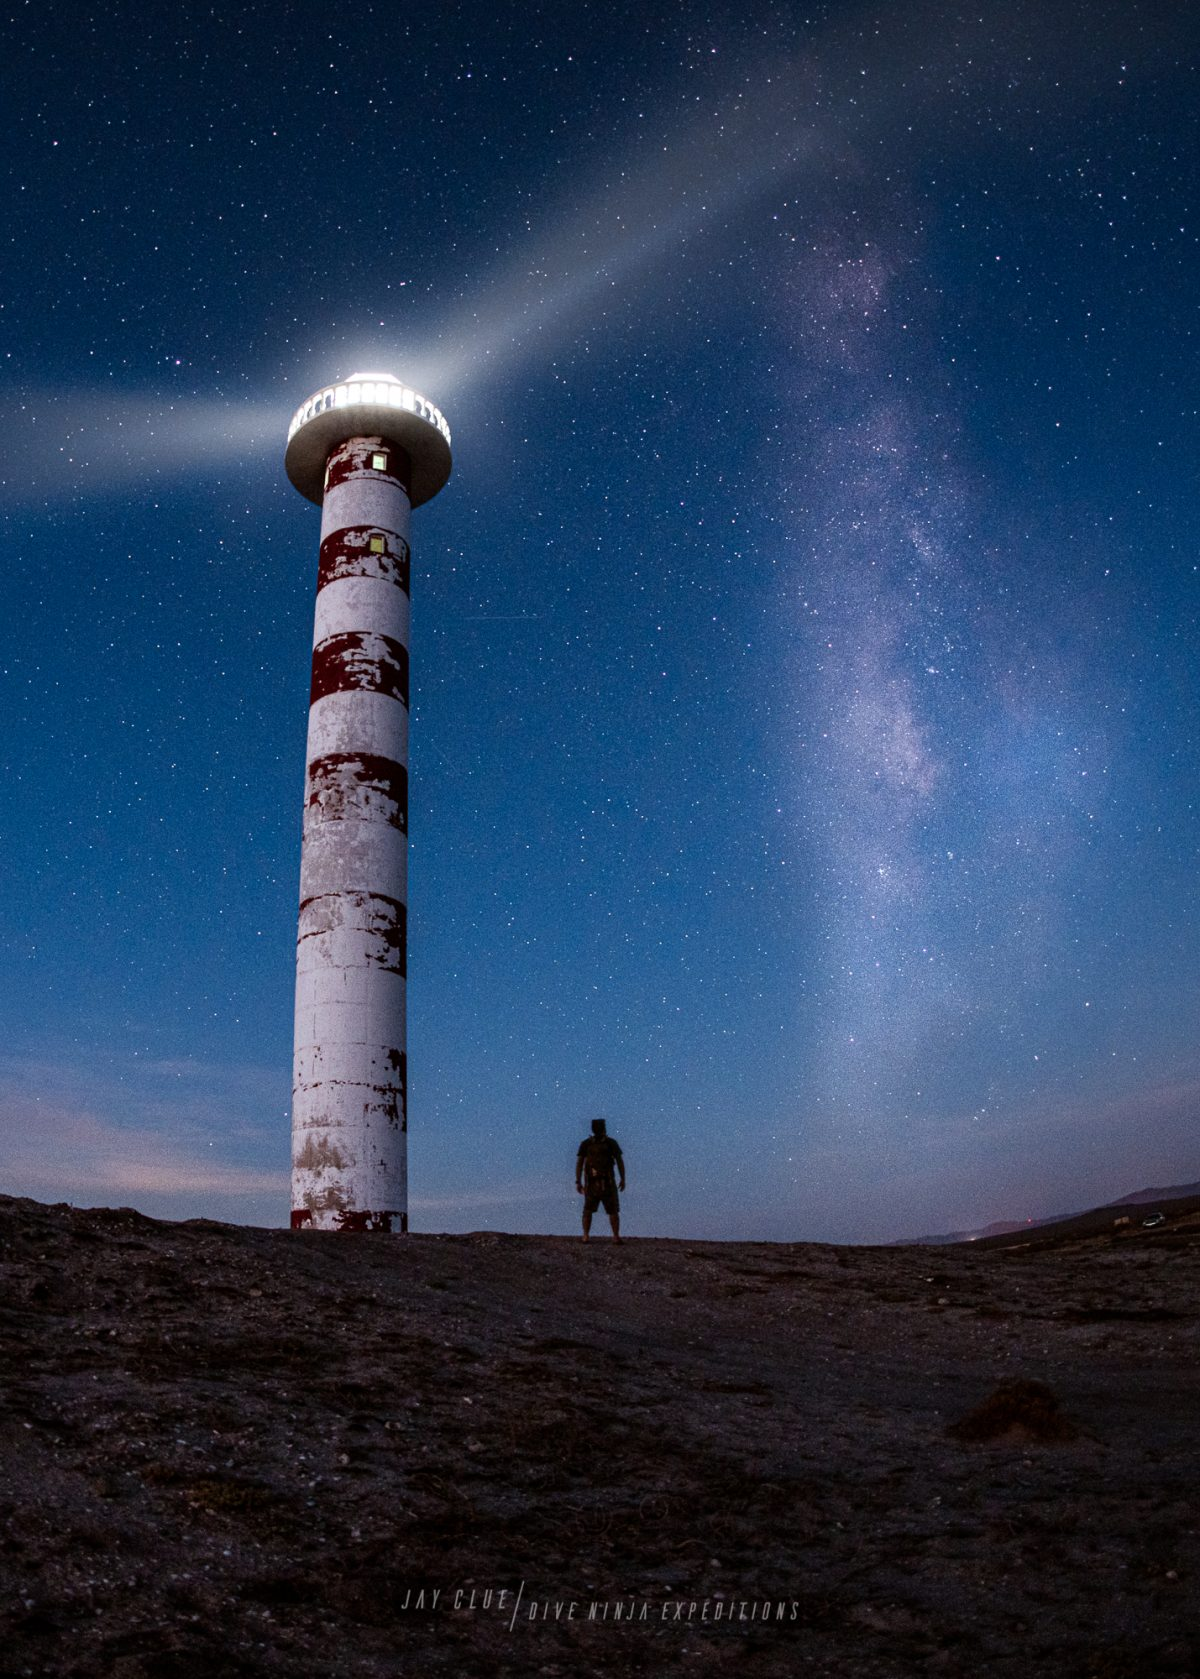 Above & Below Photo workshops in Baja California Sur, Astrophotography by Jay Clue